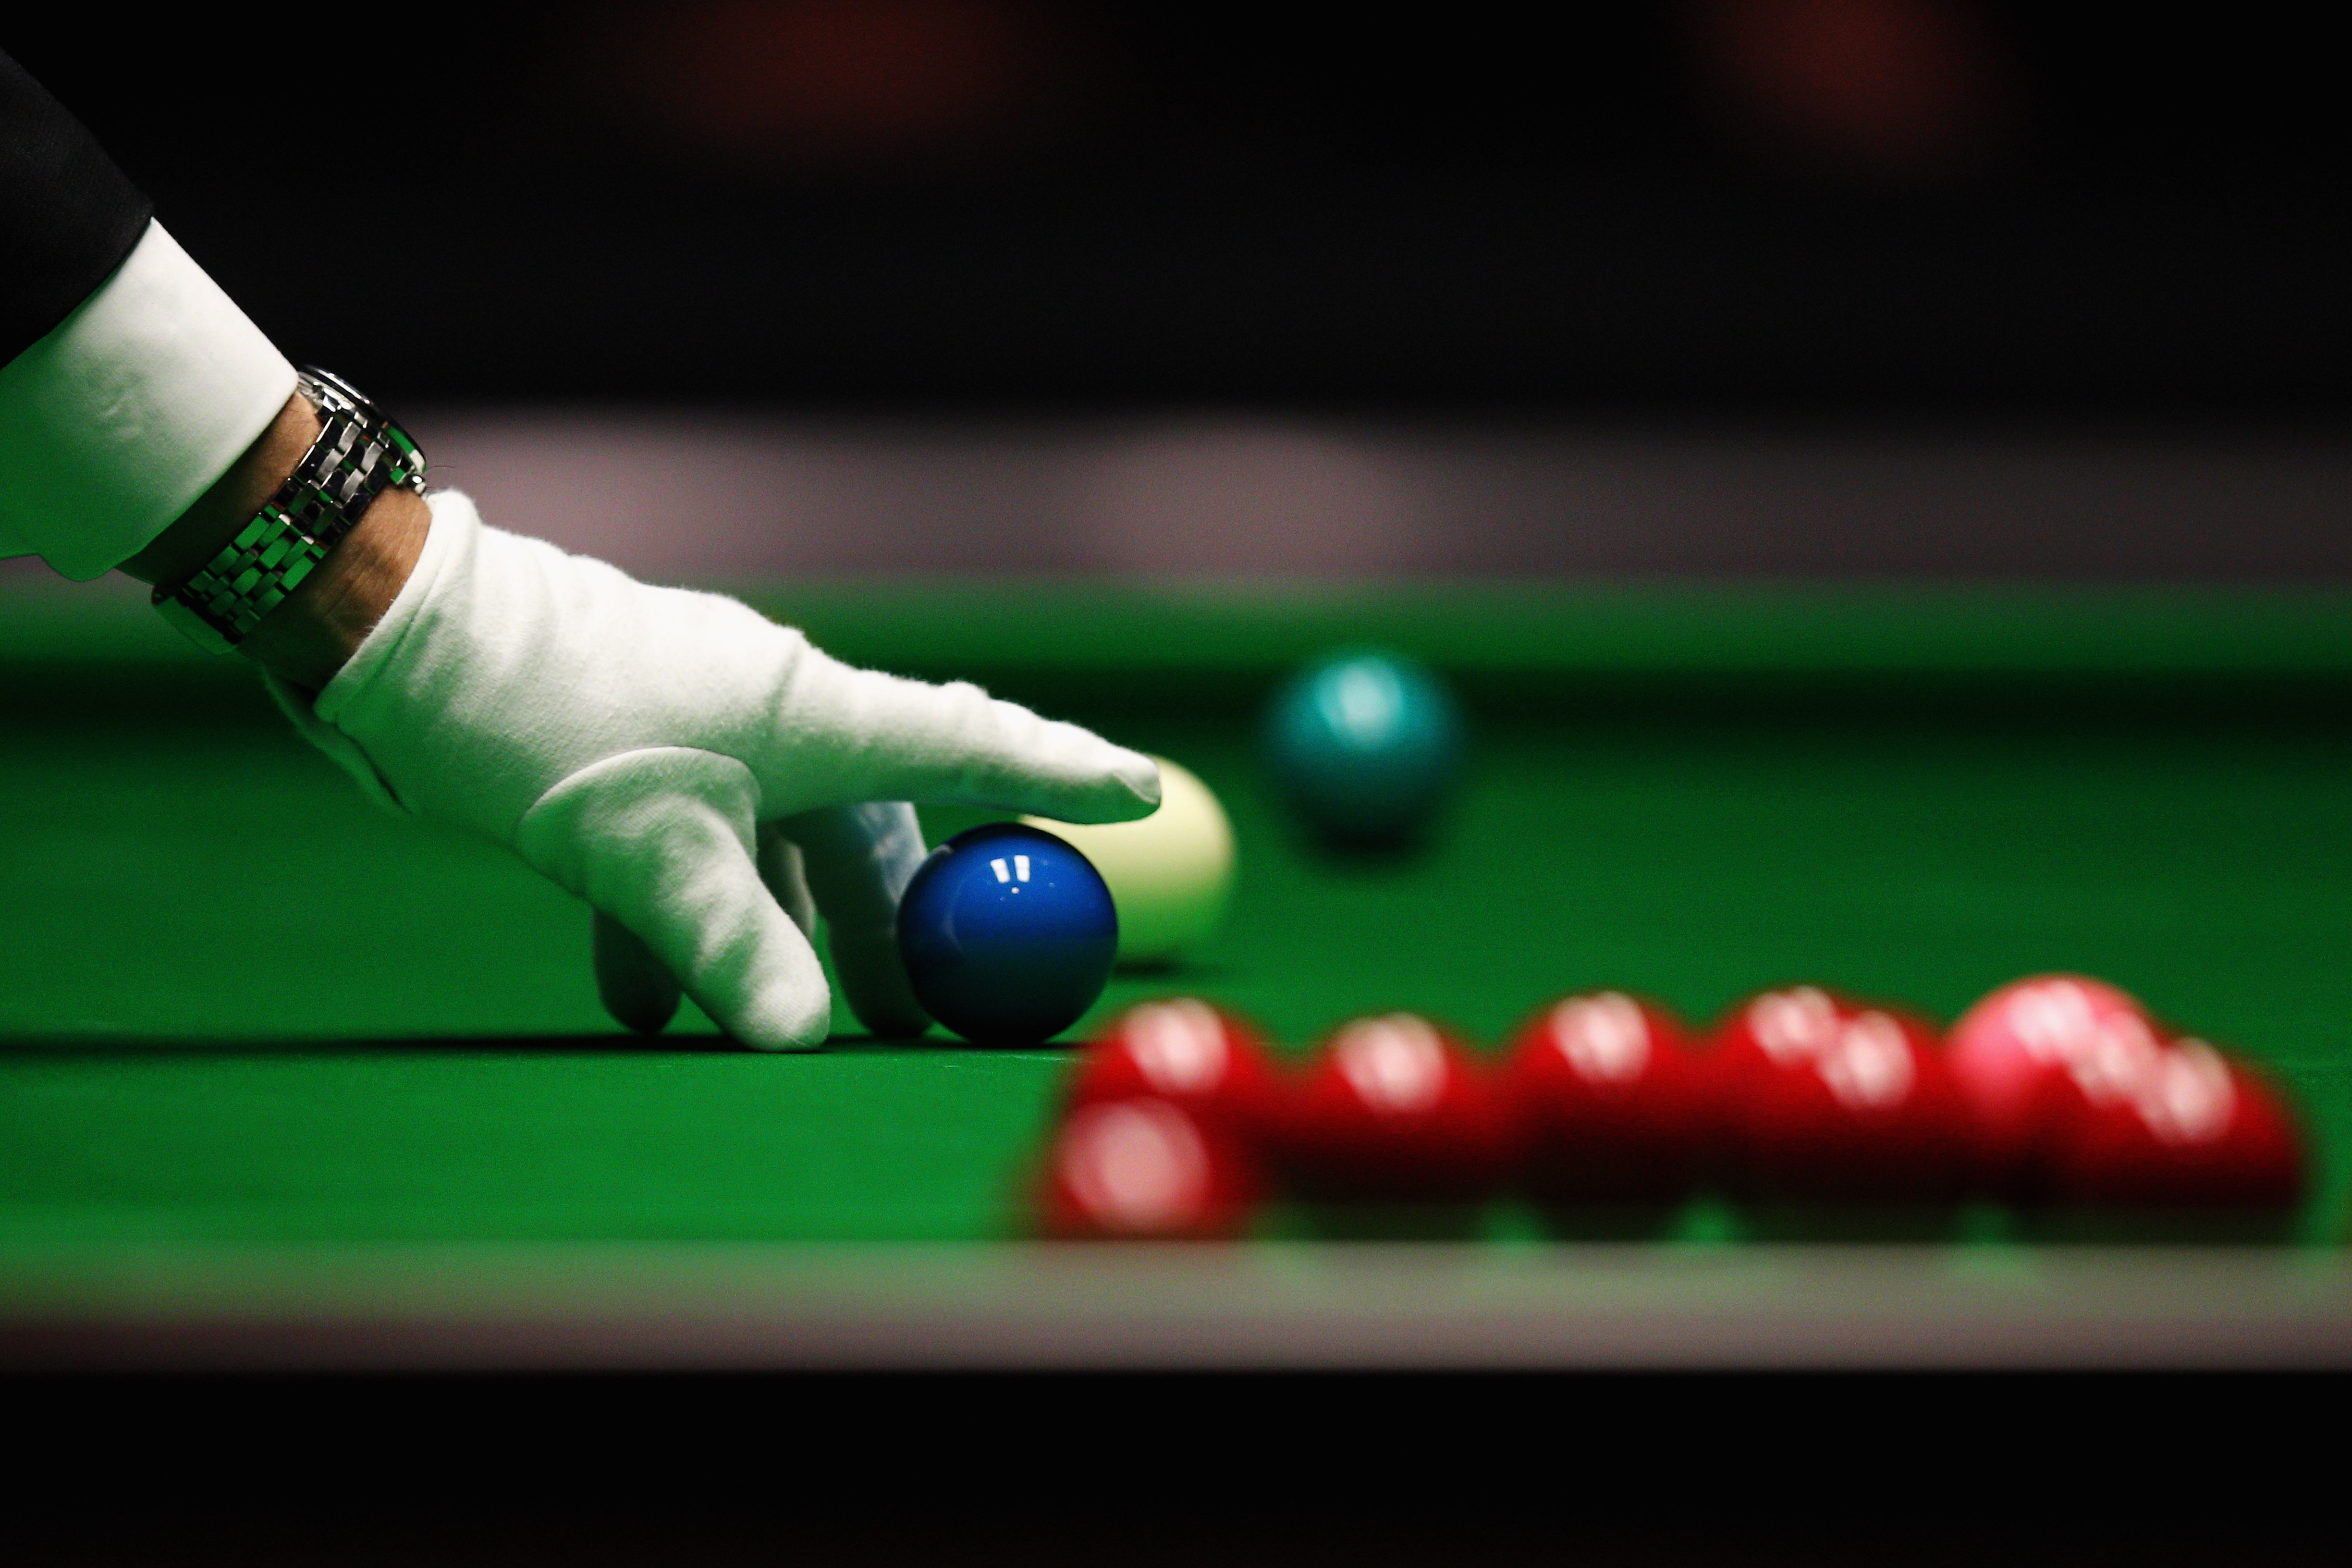 4896x3264 - Snooker Wallpapers 24